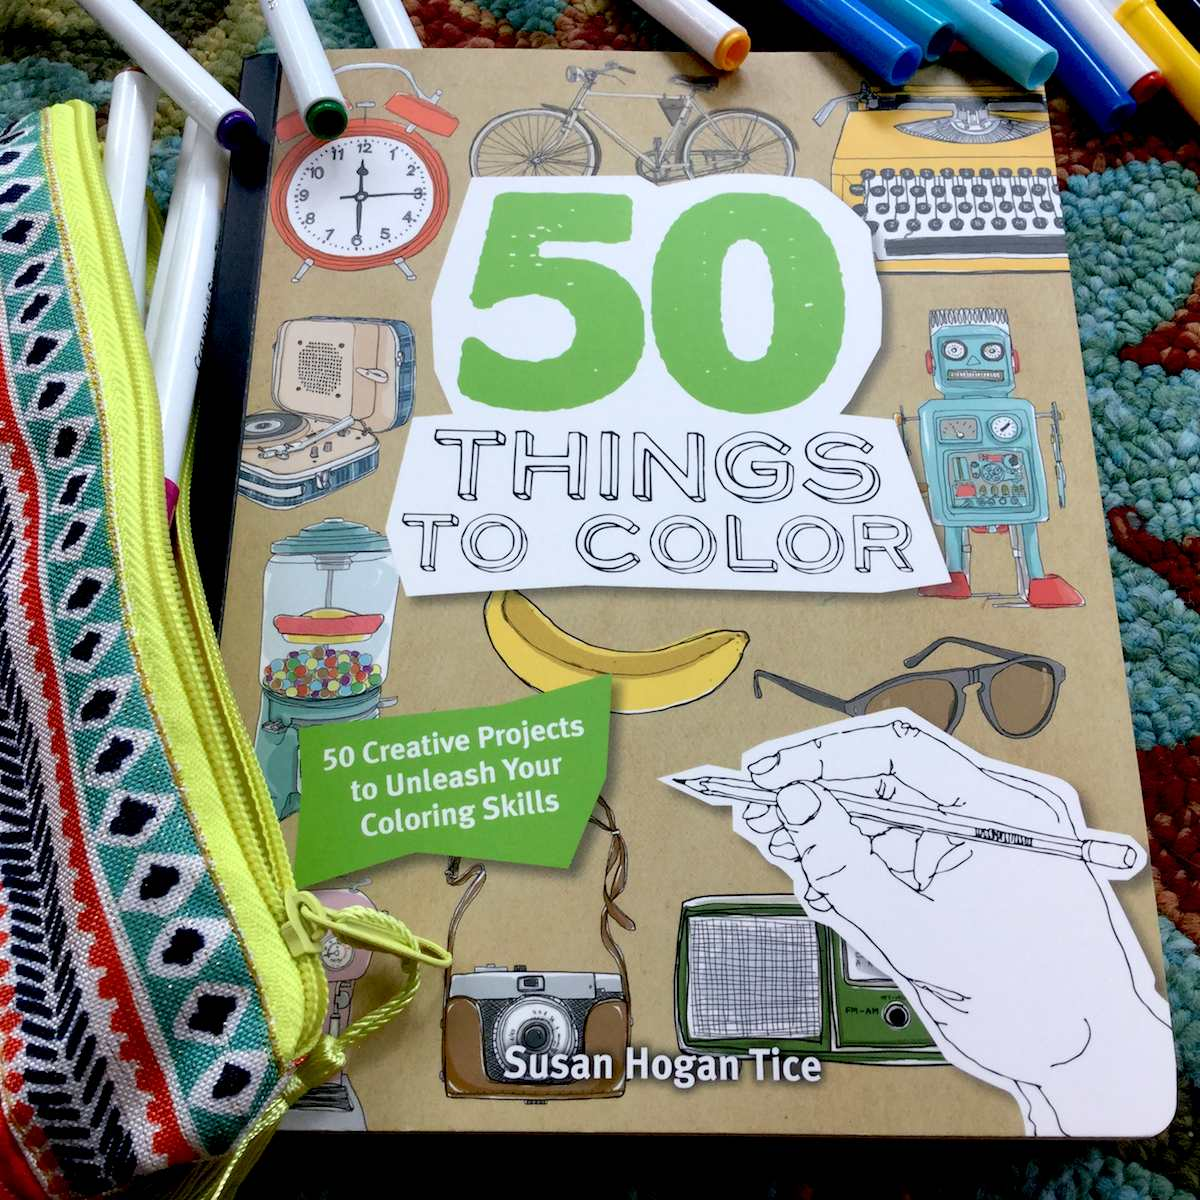 A Quirky Coloring Book With Images Of Typewriter And Giraffe An Overbite